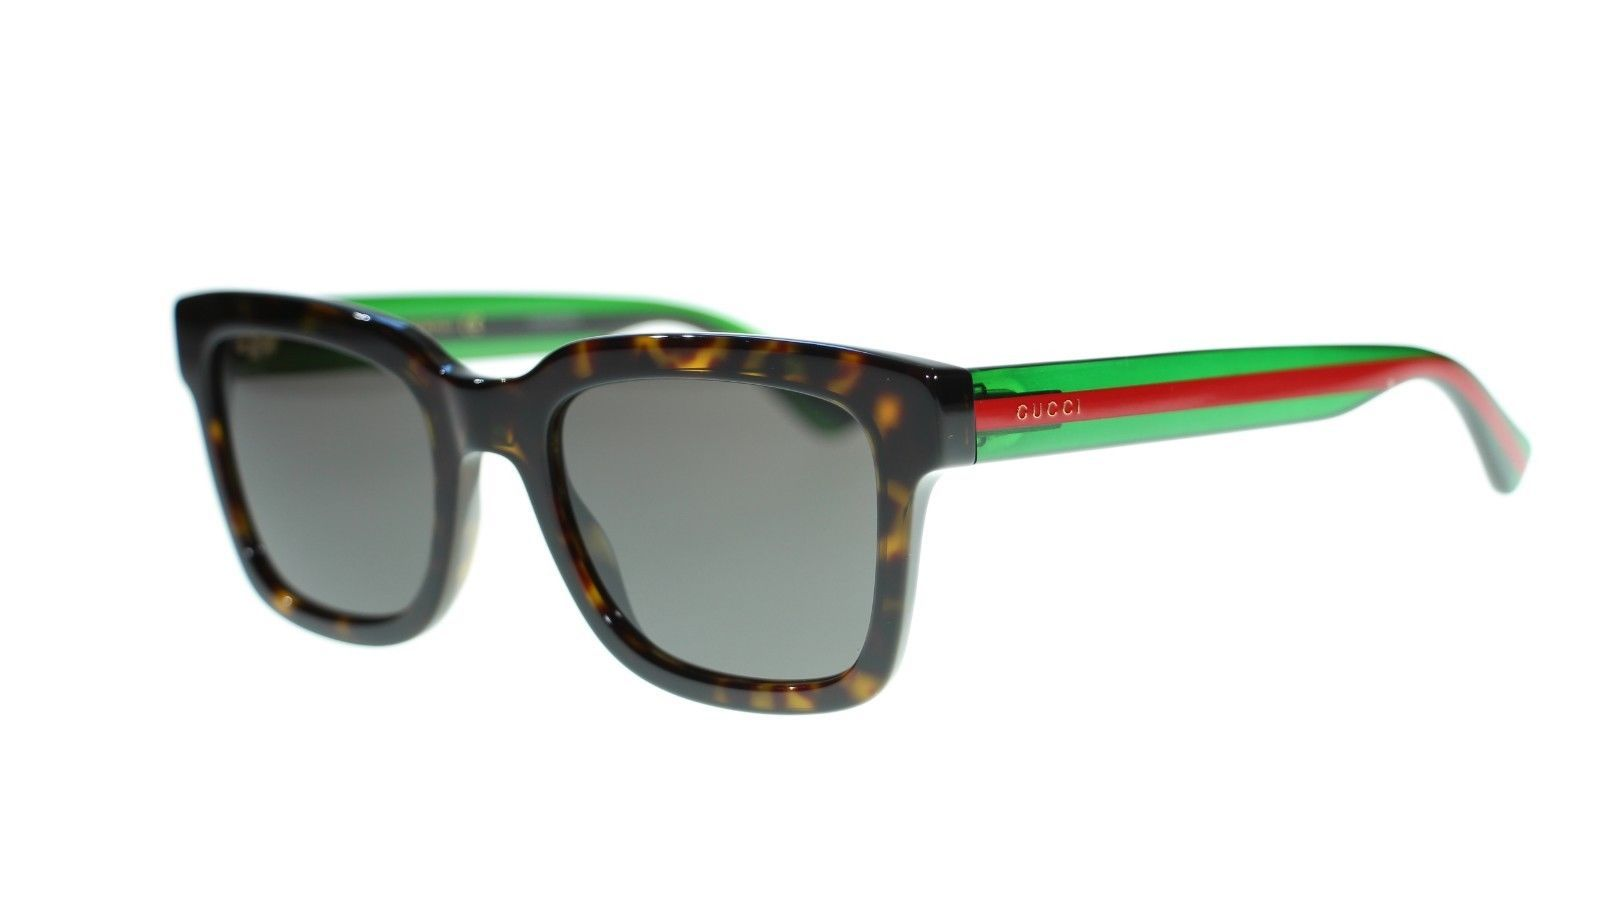 c802684d29cf6 Gucci Men Square Sunglasses GG0001S 003 and 50 similar items. 57